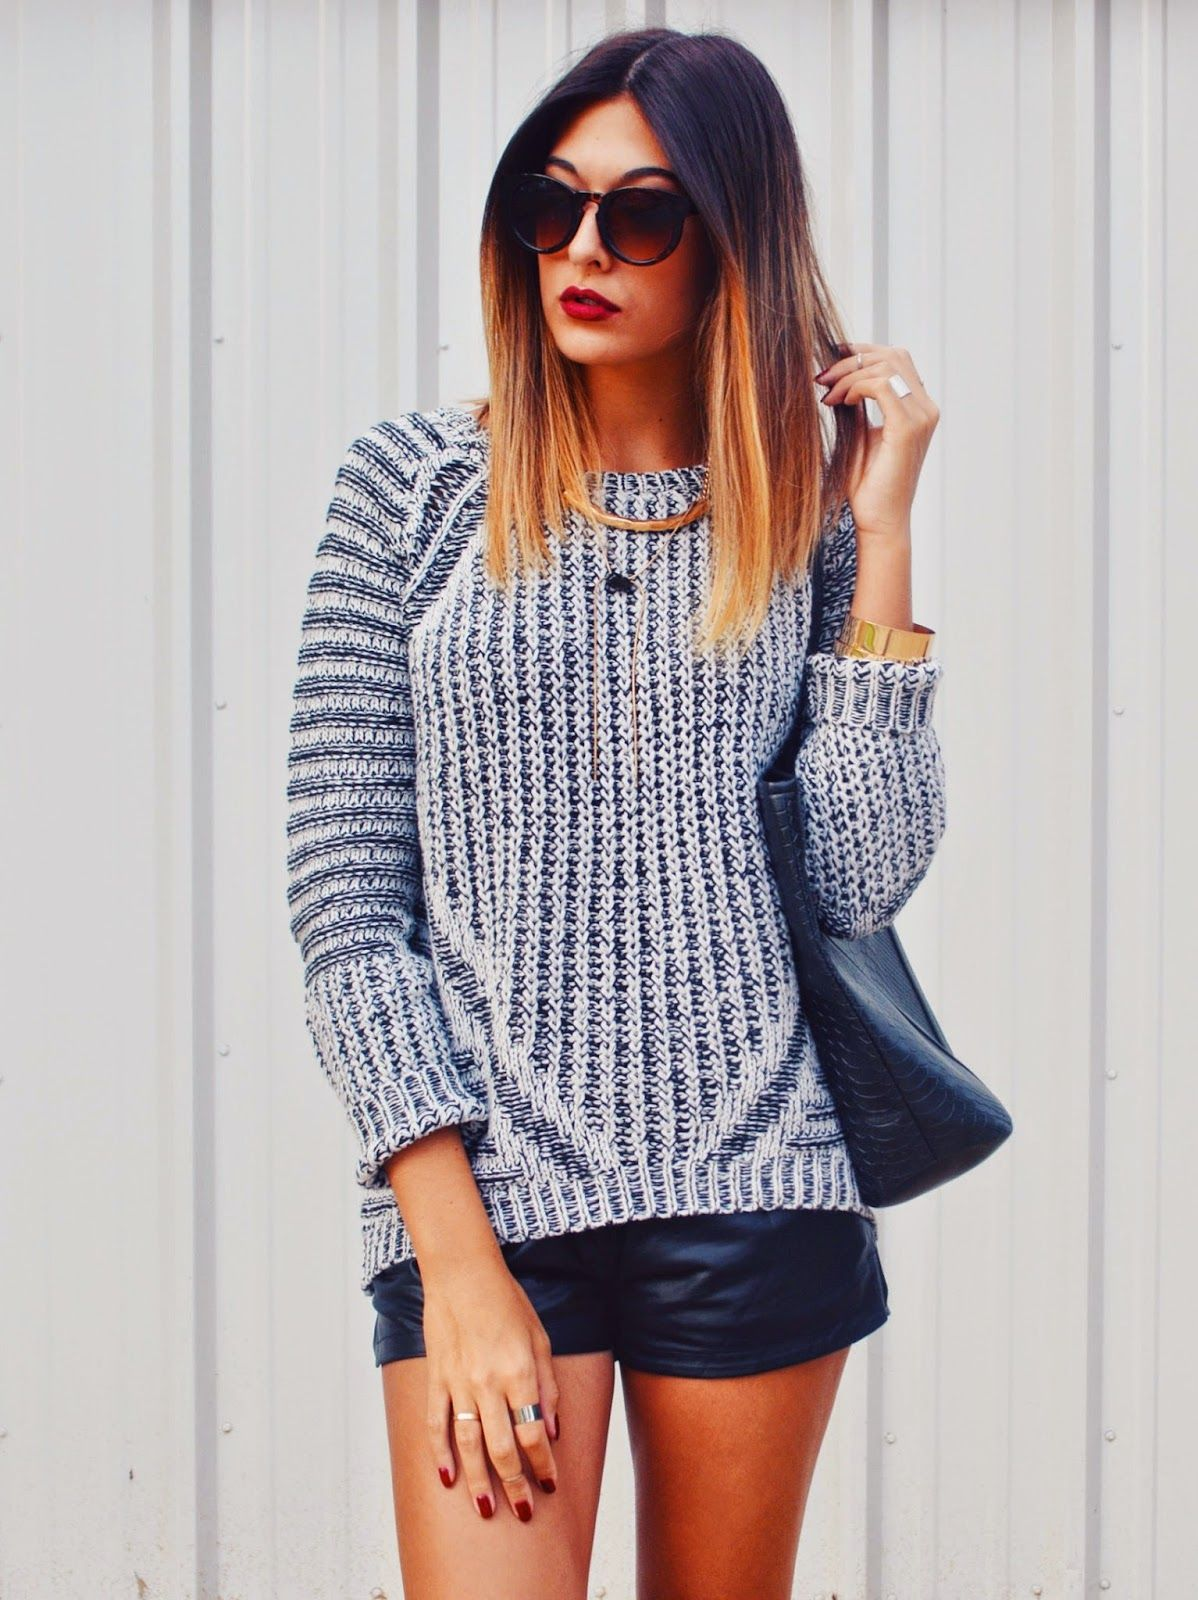 404 Not Found. Shorts OotdSweater And ShortsGrey SweaterWomen s ClothesUk  Hair Trends2016 Winter Hair TrendsWinter 2014 ... 2c3dafd8a